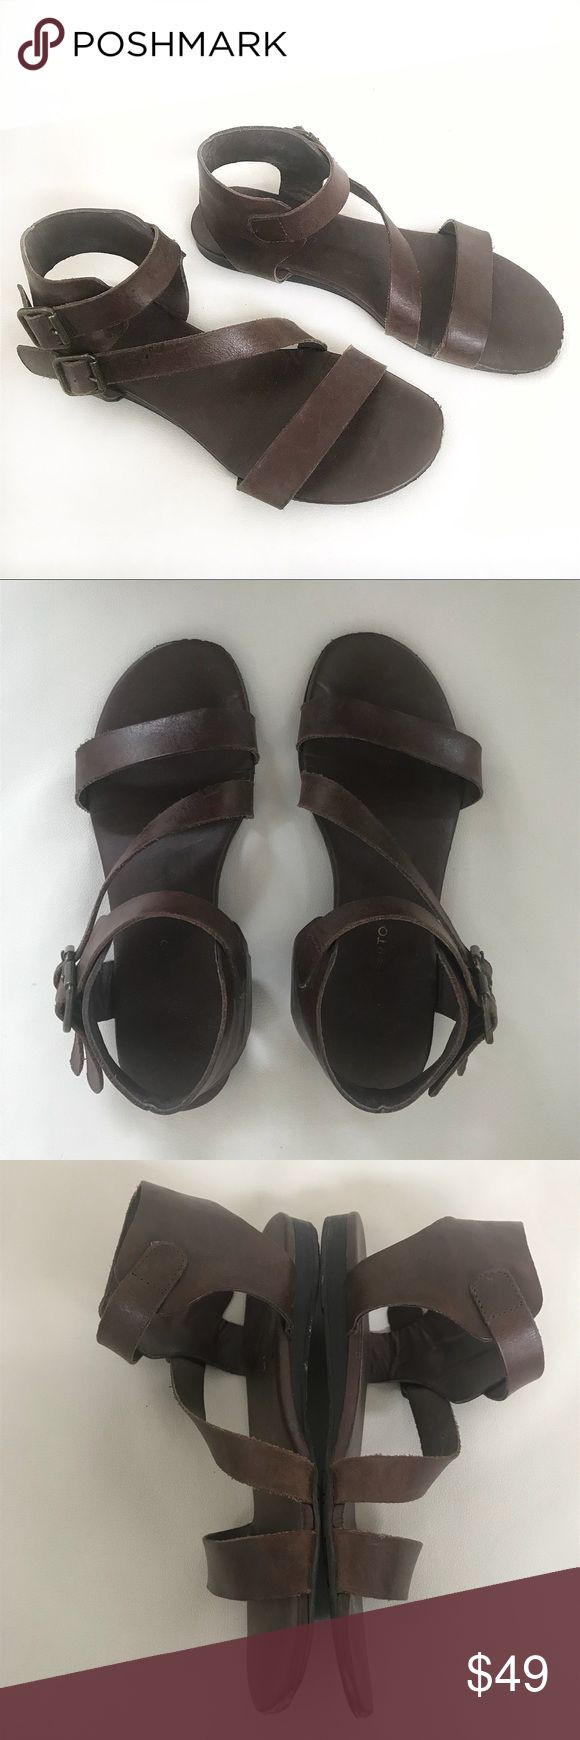 Franco Sarto brown leather sandals size 8 Franco Sarto brown leather sandals size 8  Chipped on the front (see pics) but in good condition otherwise   Not what you're looking for? Feel free to browse my closet for other occasions: Winter, spring, summer, fall, birthday, New Year's Eve, Valentine's Day date, Graduation, Prom, Purim, St. Patrick's Day, Easter, Earth Day, Cinco de Mayo, Mother's Day, EDC, Coachella, Memorial Day, Comic Con, 4th of July, Labor Day, Thanksgiving, Halloween…